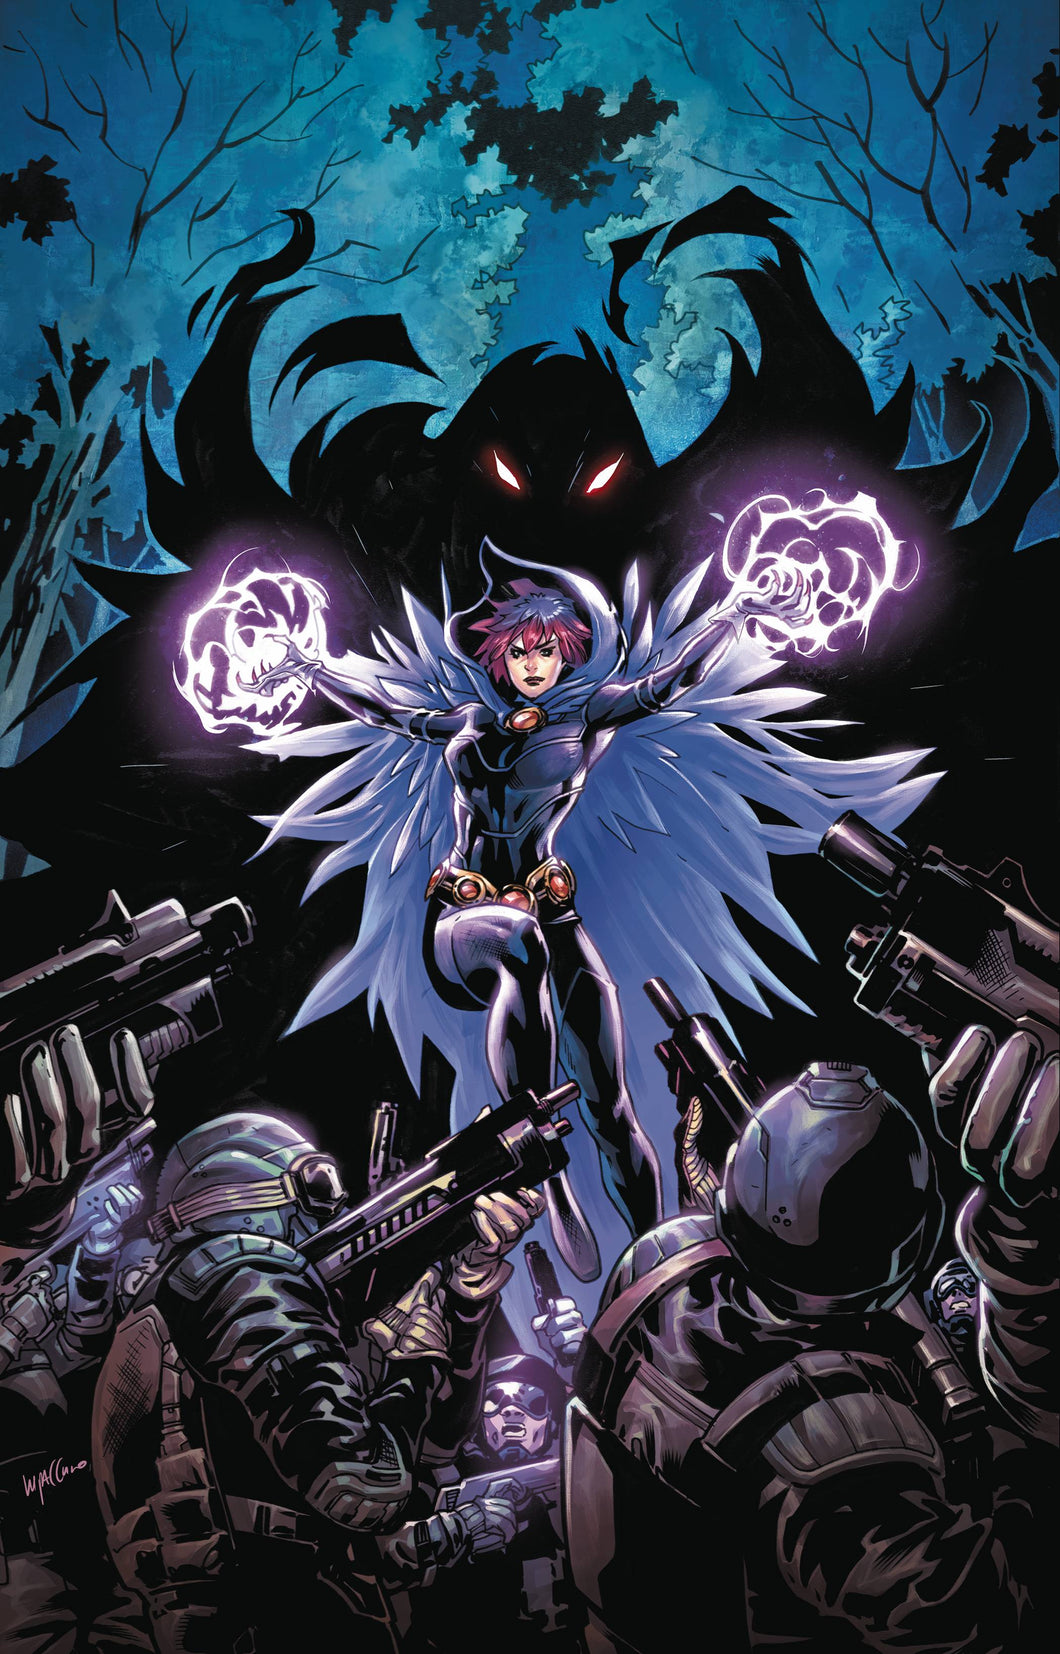 RAVEN DAUGHTER OF DARKNESS #5 (OF 12) (05/30/2018)